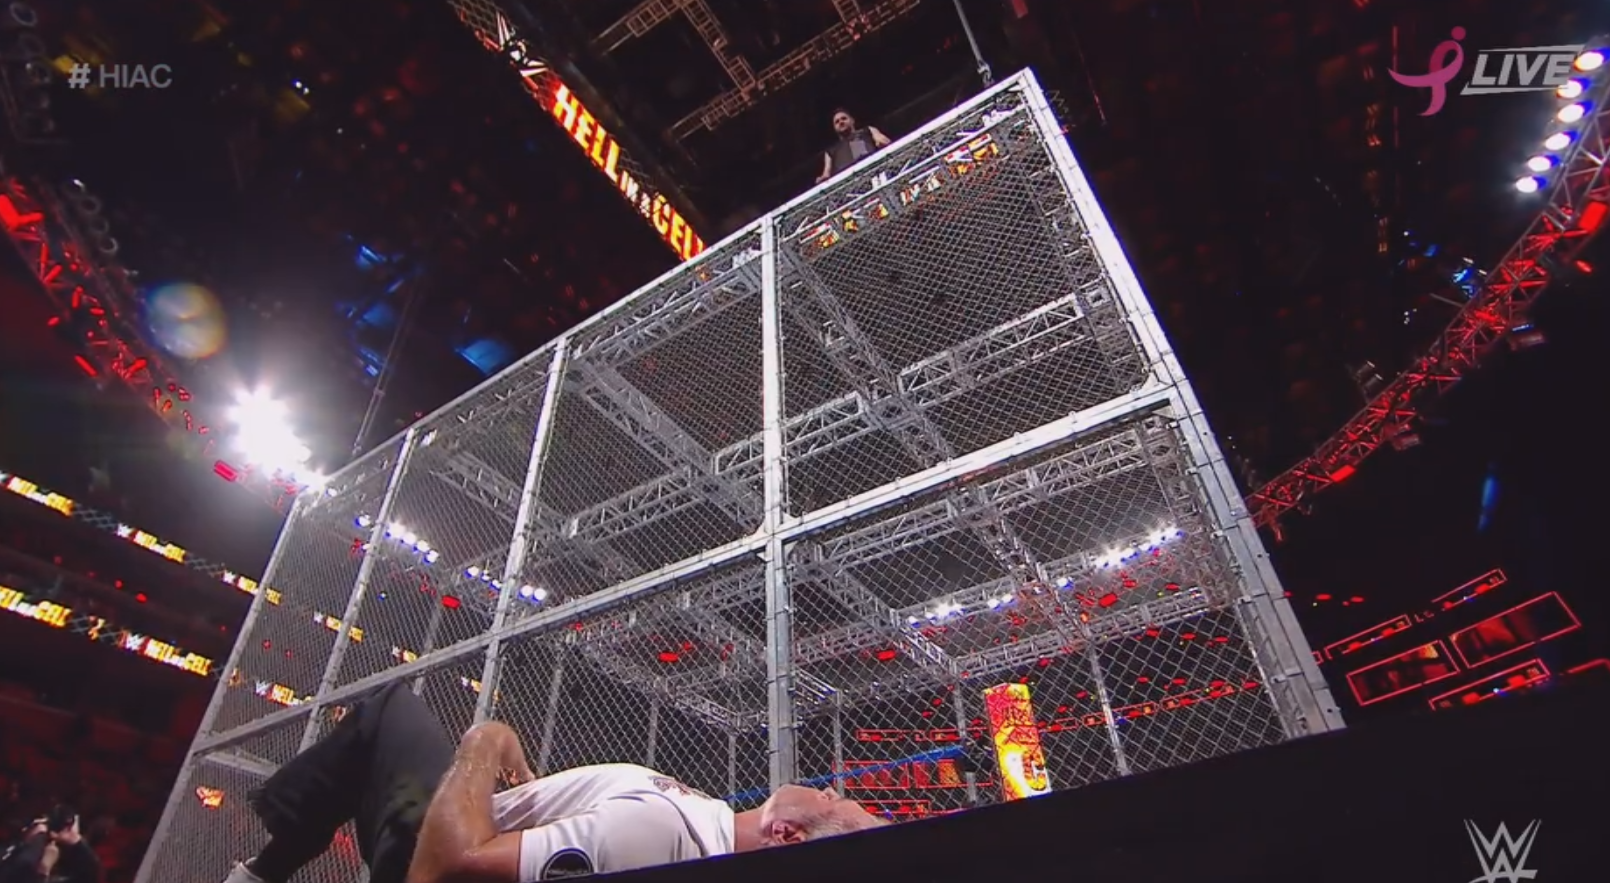 The Biggest Spectacle at Hell in a Cell? Friendship.